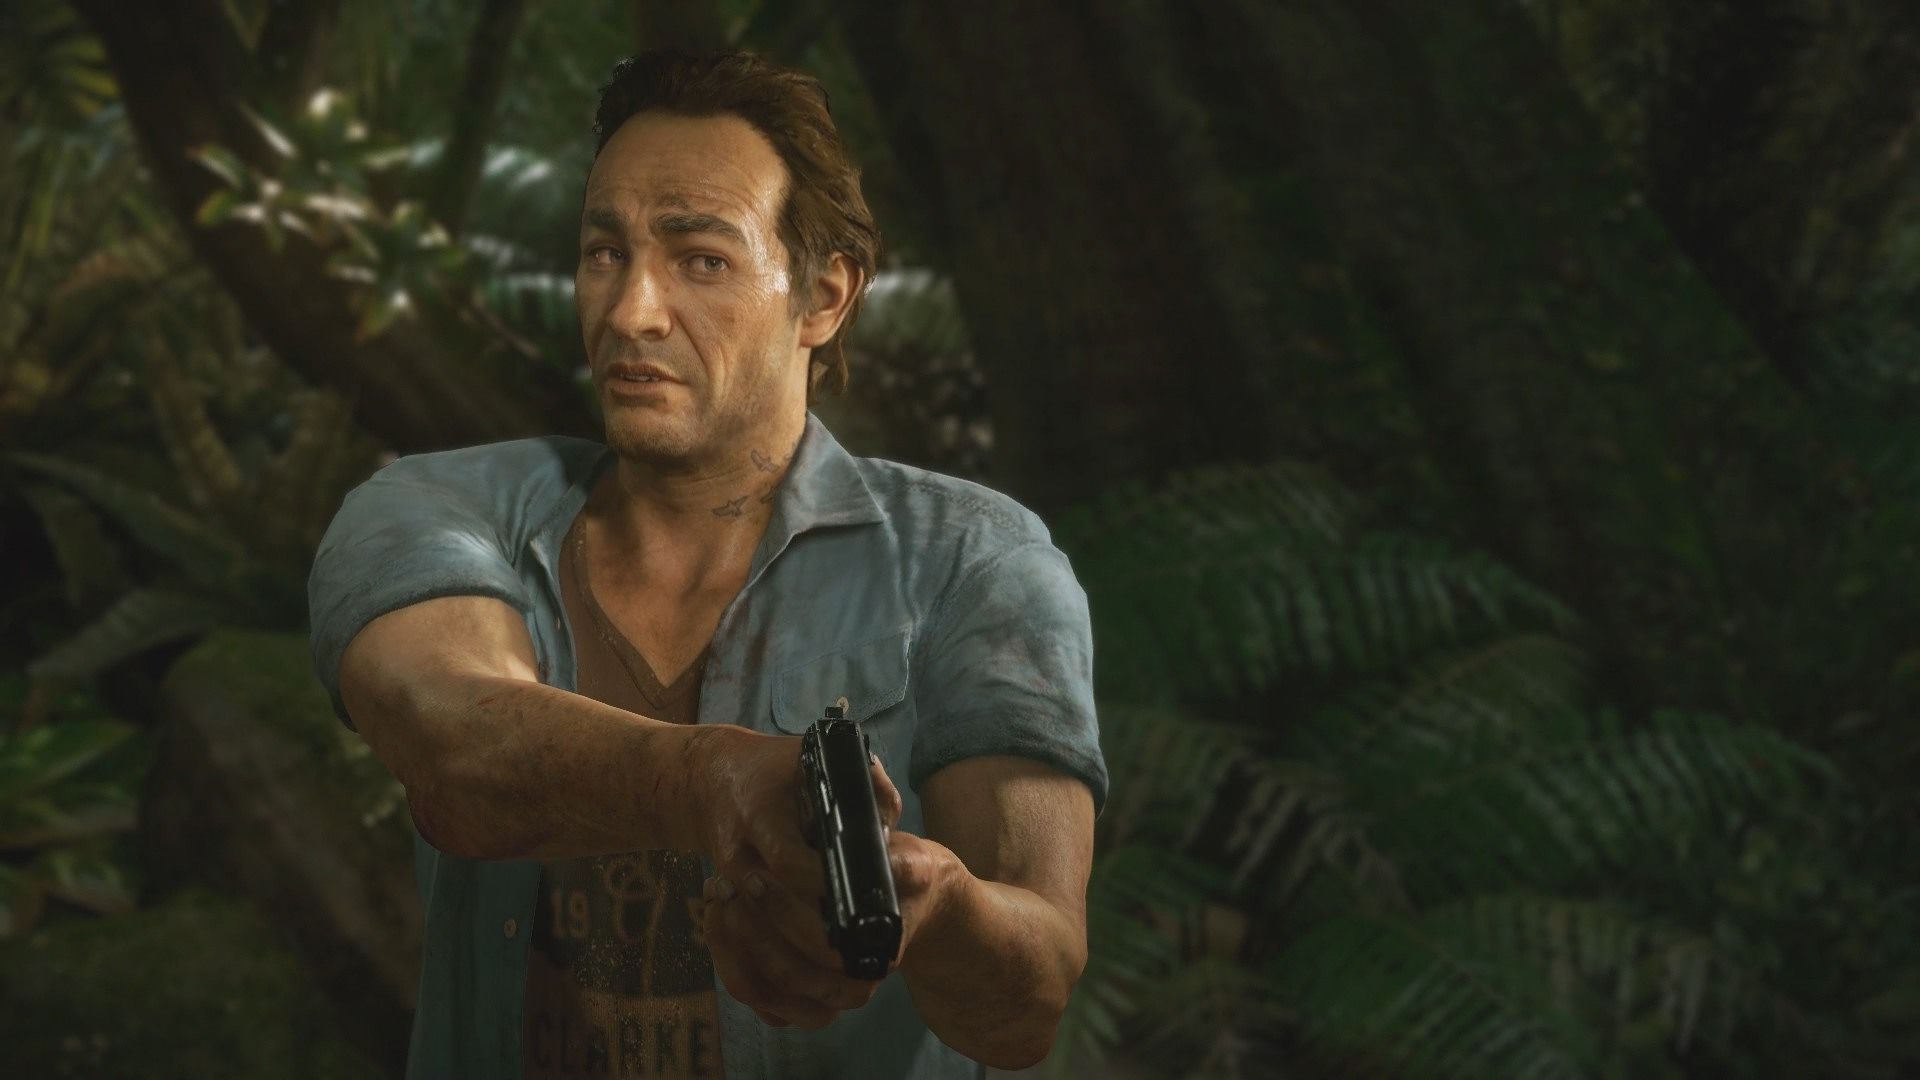 uncharted-4_playstation-experience_gameplay_1080_mp4_still001-1417908612498-uncharted-4-why-nathan-s-brother-sam-drake-can-t-be-trusted-jpeg-284920